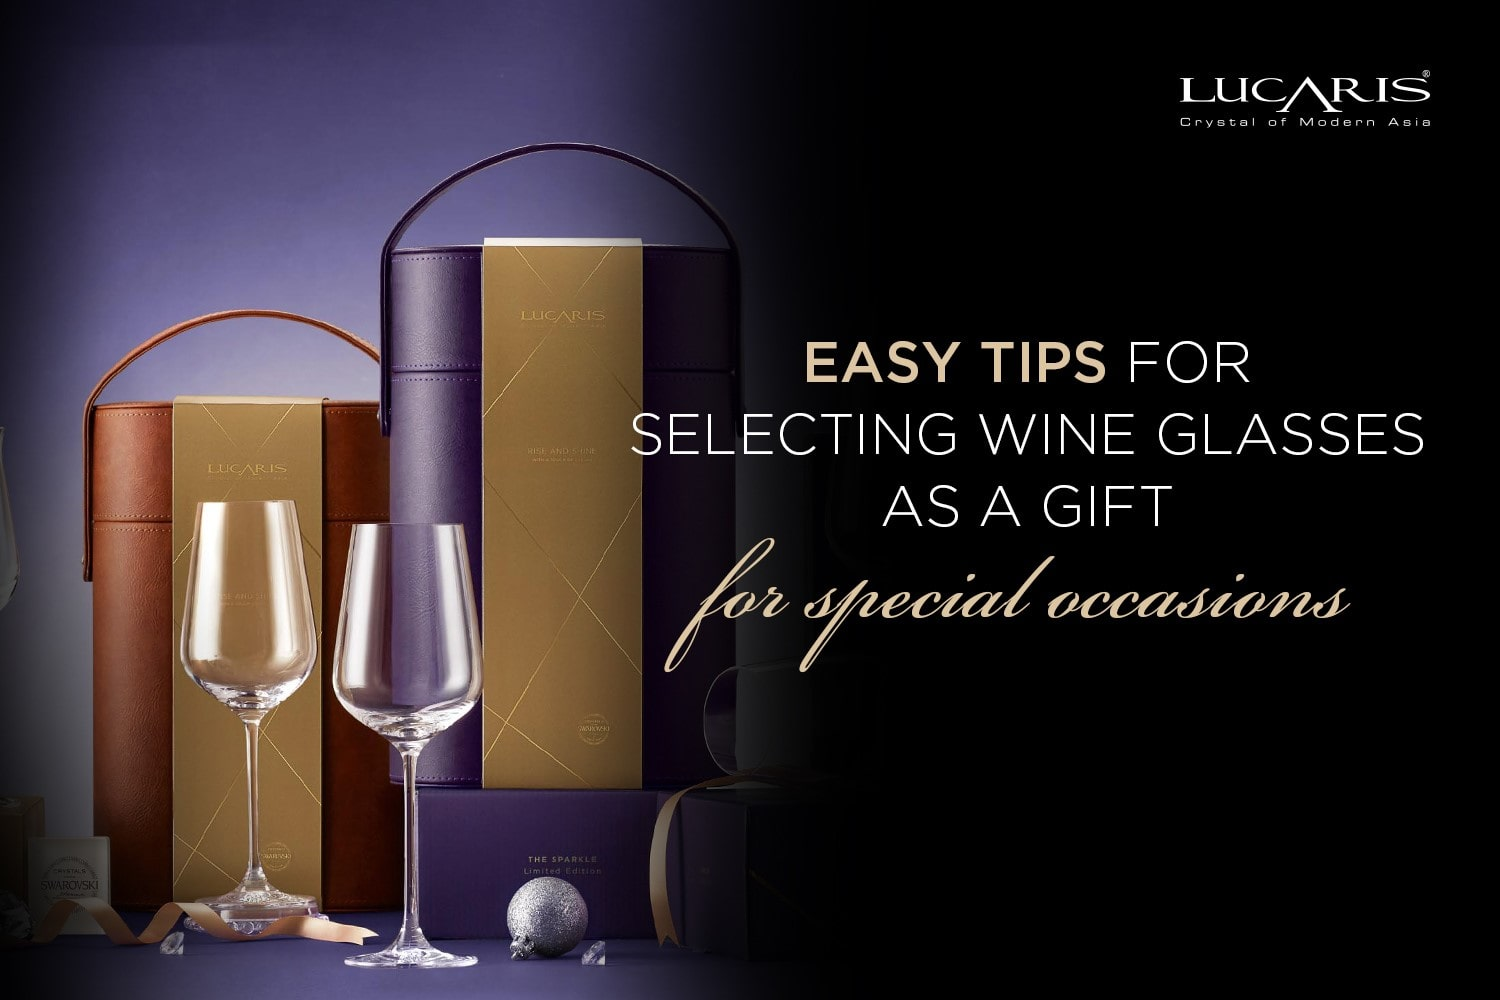 Selecting wine glasses as a gift for special occasions